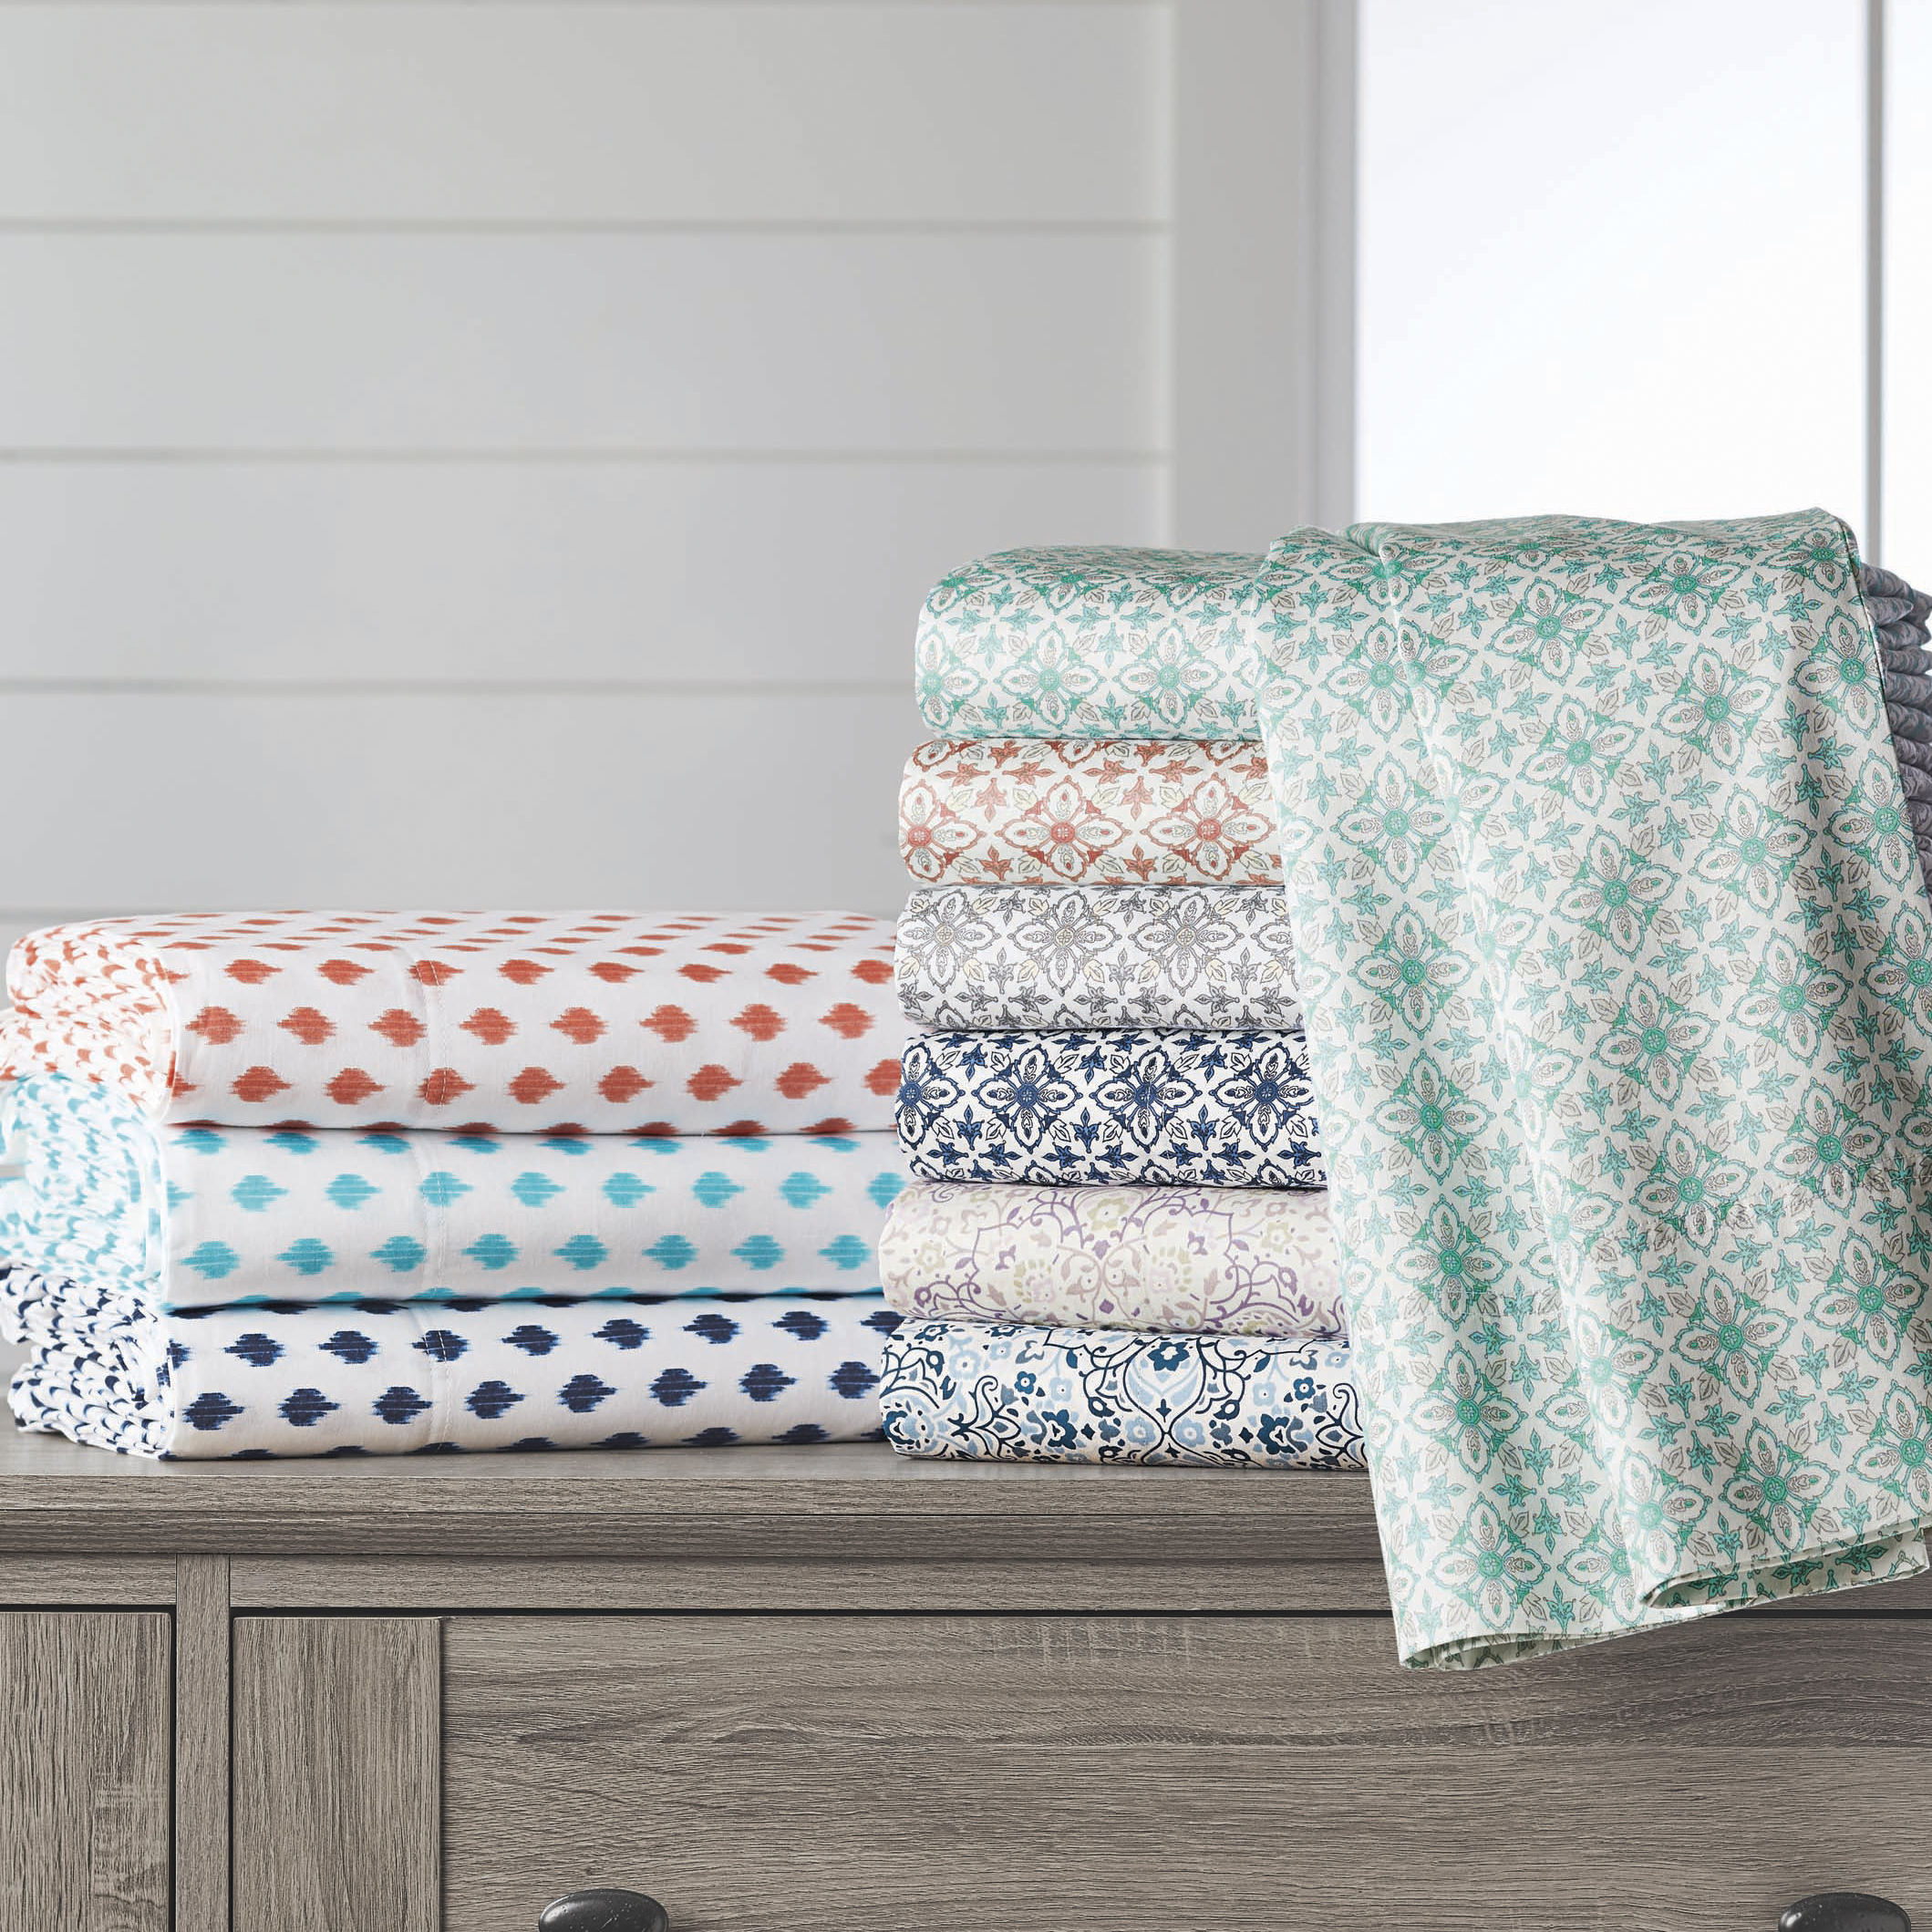 Better Homes and Gardens 300 Thread Count Sheet Set